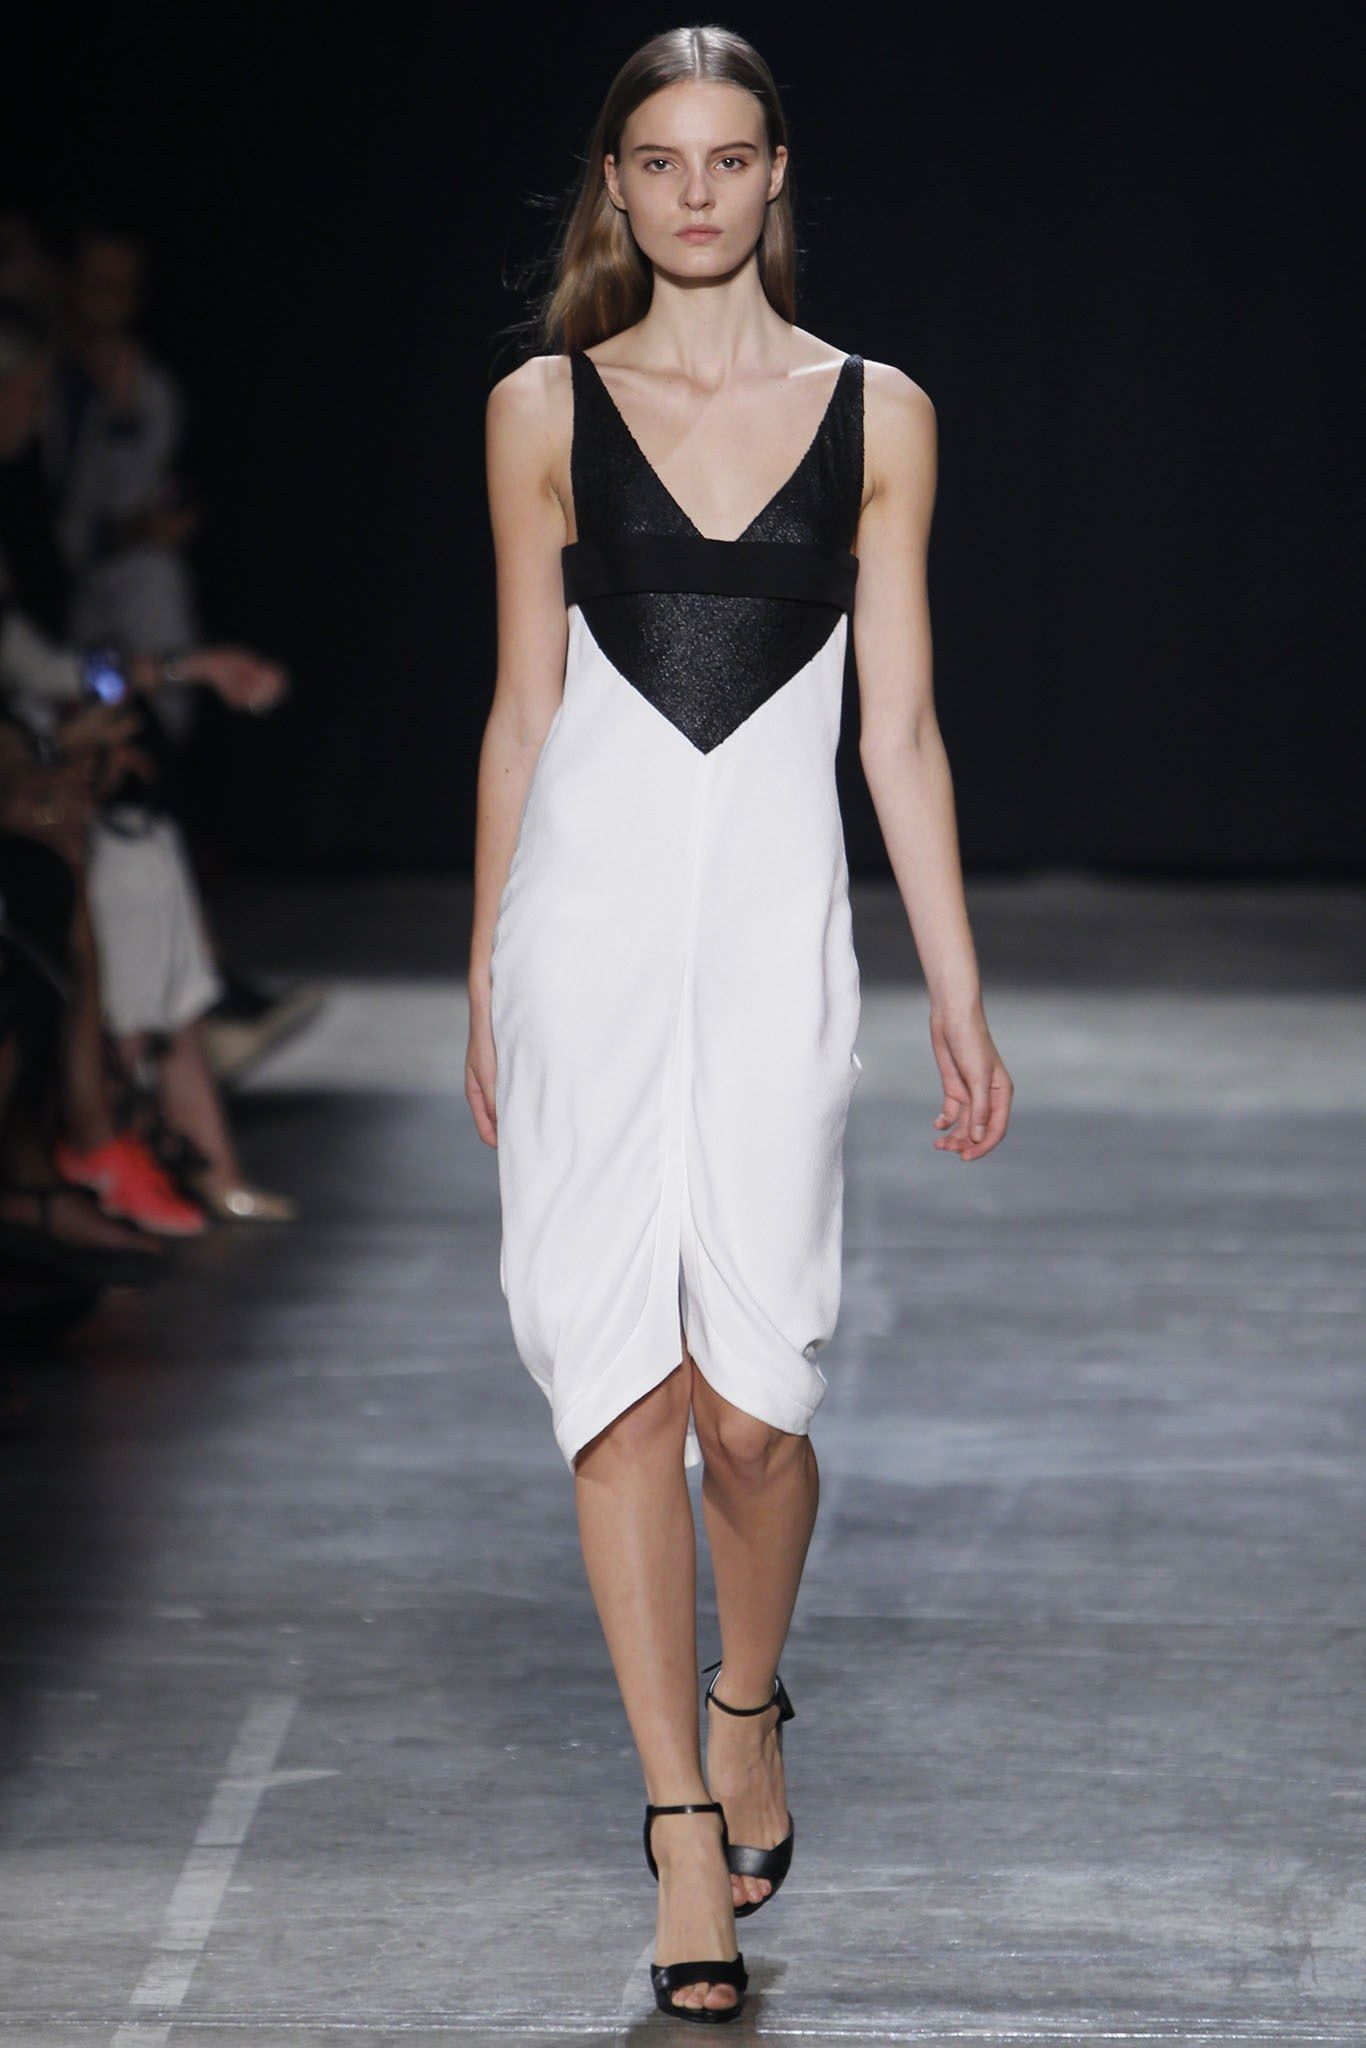 dca8c29b369 Narciso Rodriguez Spring 2013 Ready-to-Wear Fashion Show in 2019 ...